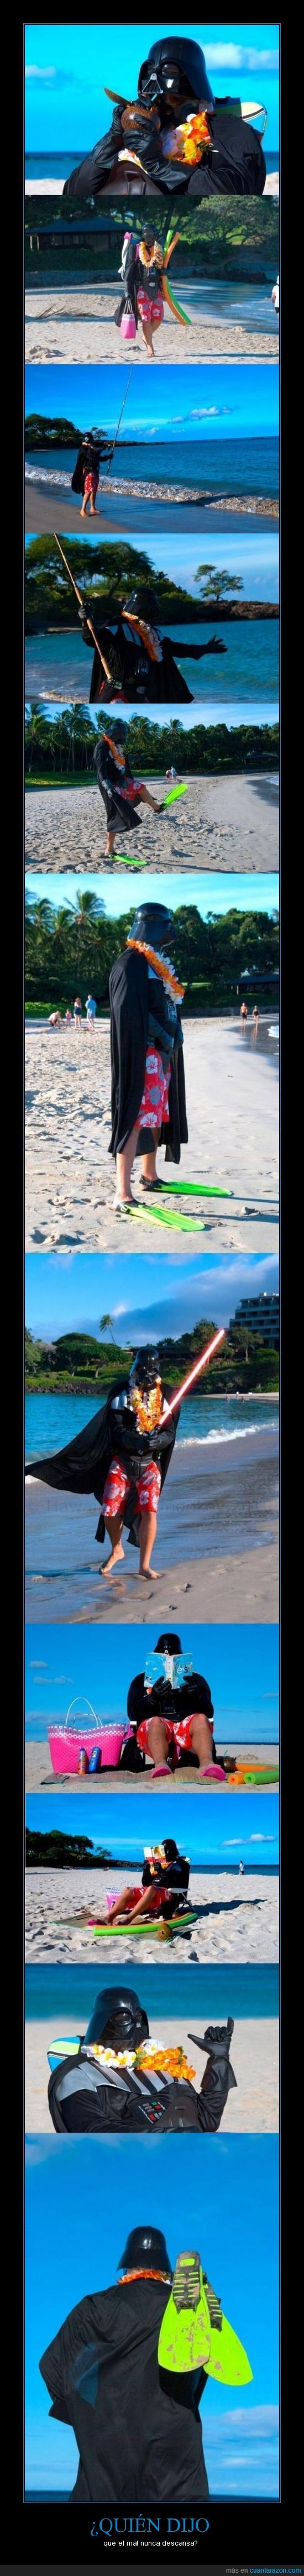 Darth Vader,hawaii,playa,vacaciones